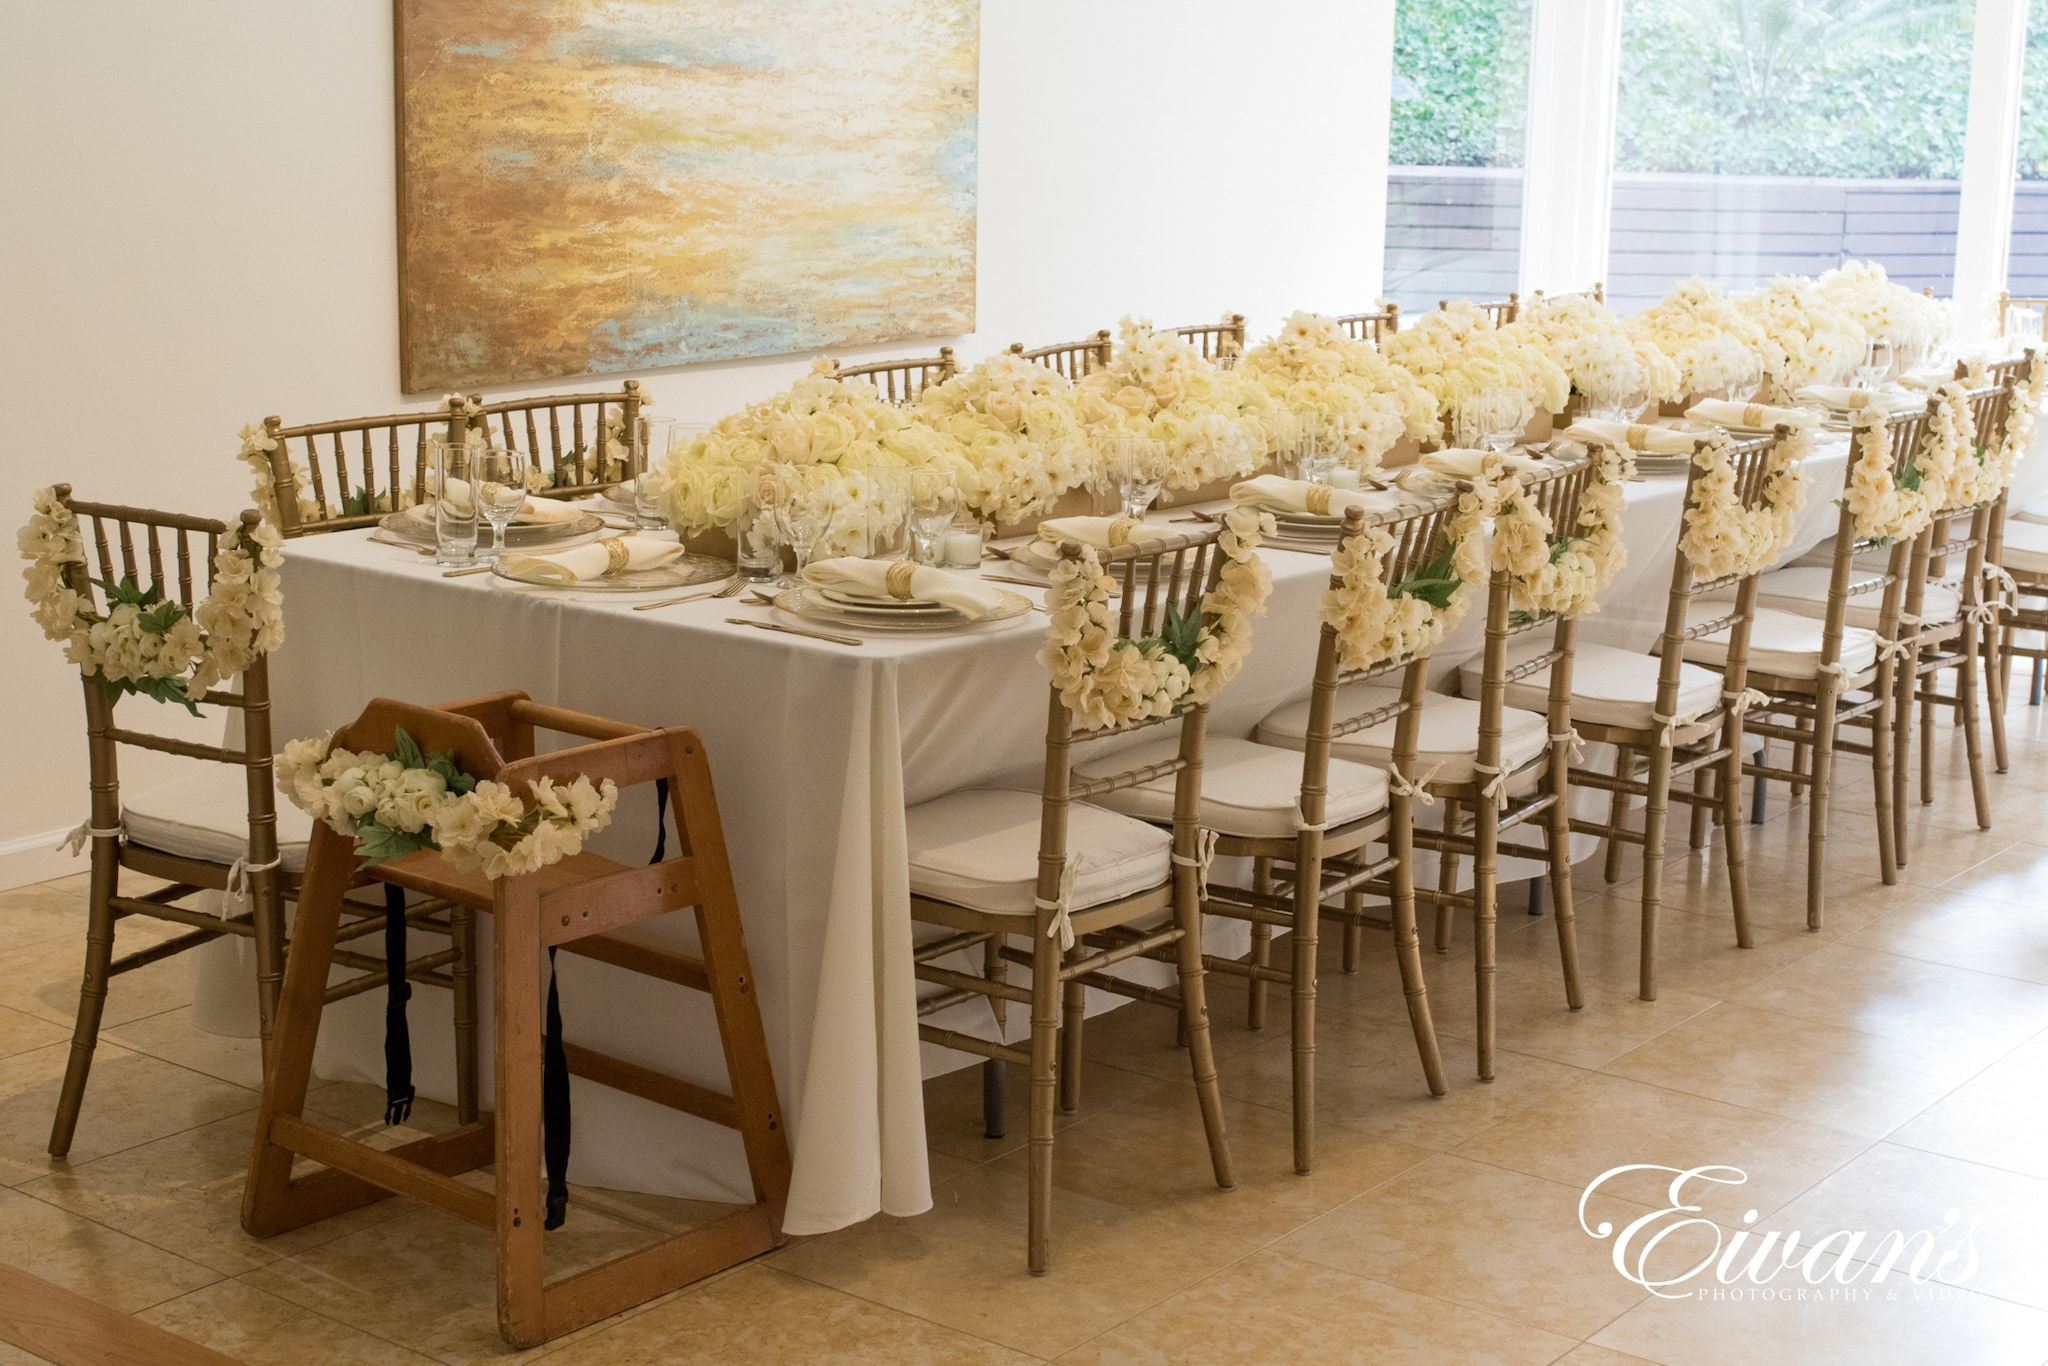 image of a wedding table setting